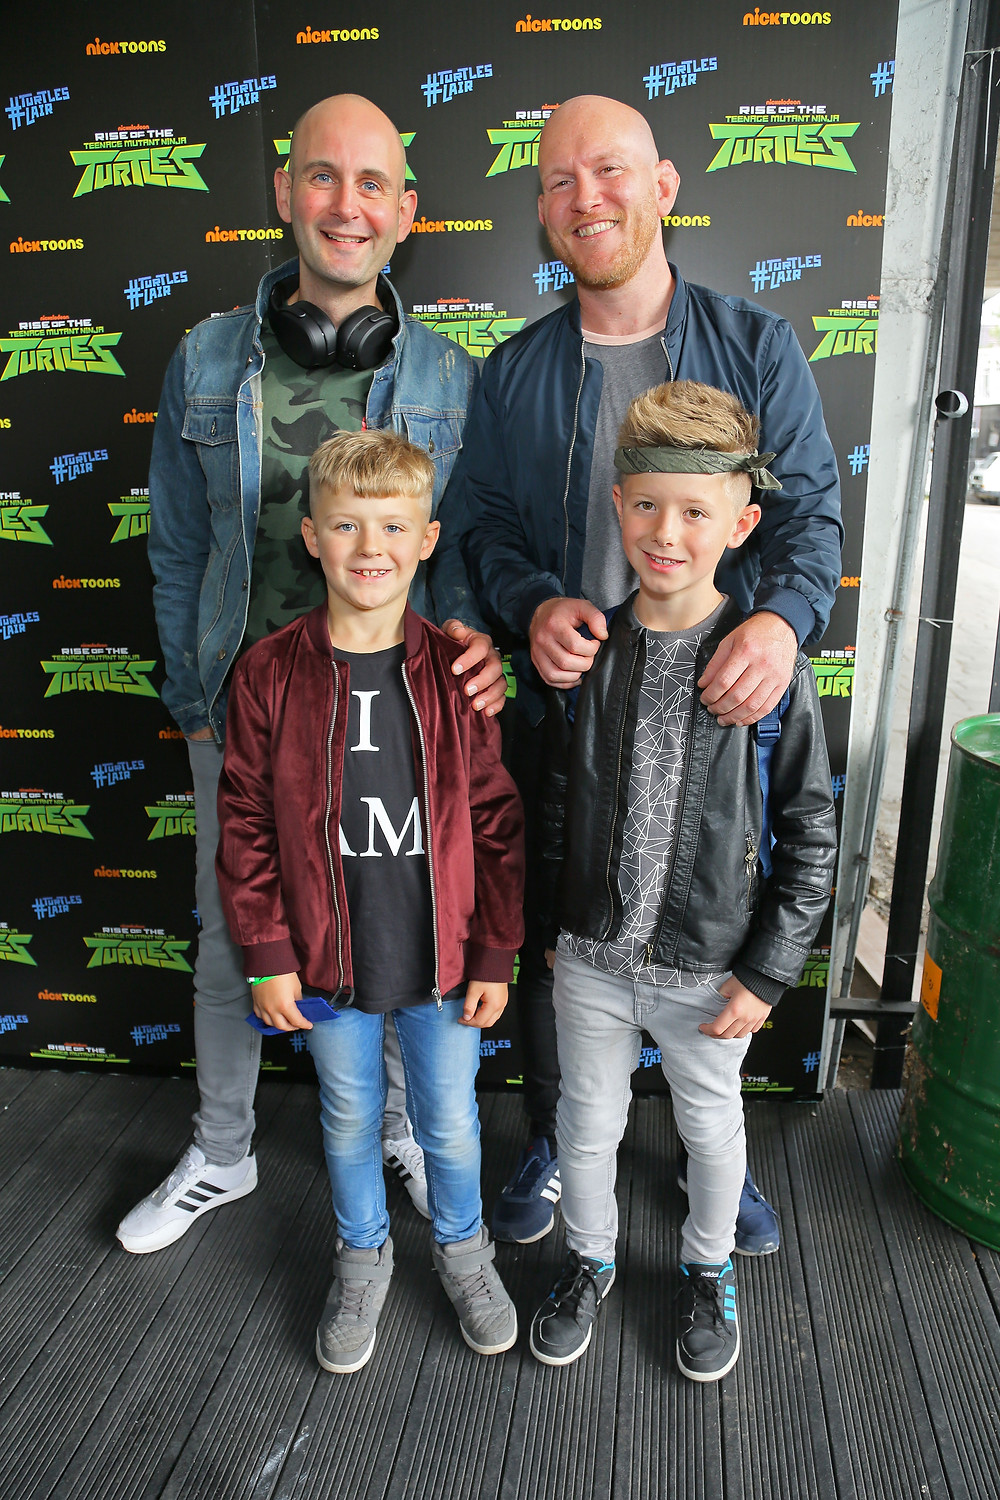 Daddy & Dad, Lyall & Richard at The Rise of the Teenage Mutant Ninja Turtles launch